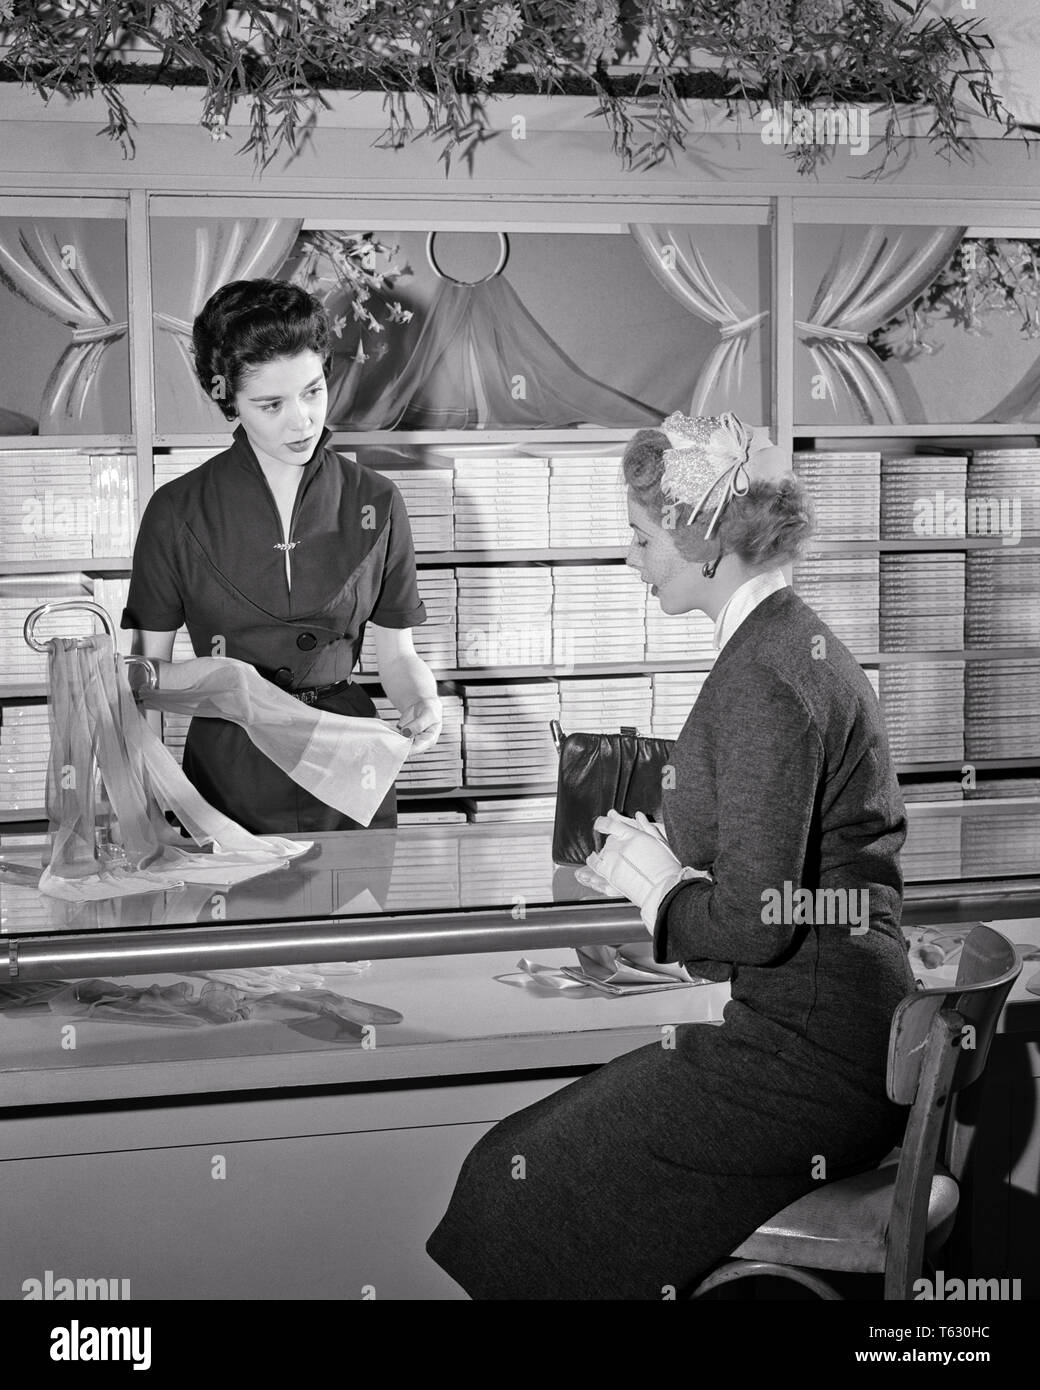 1950s Saleswoman Helping A Woman Seated At The Hosiery Counter Of Department Store S2367 Har001 Hars Style Communication Career Young Adult Information Department Lifestyle Satisfaction Females Jobs Showing Luxury Seated Copy